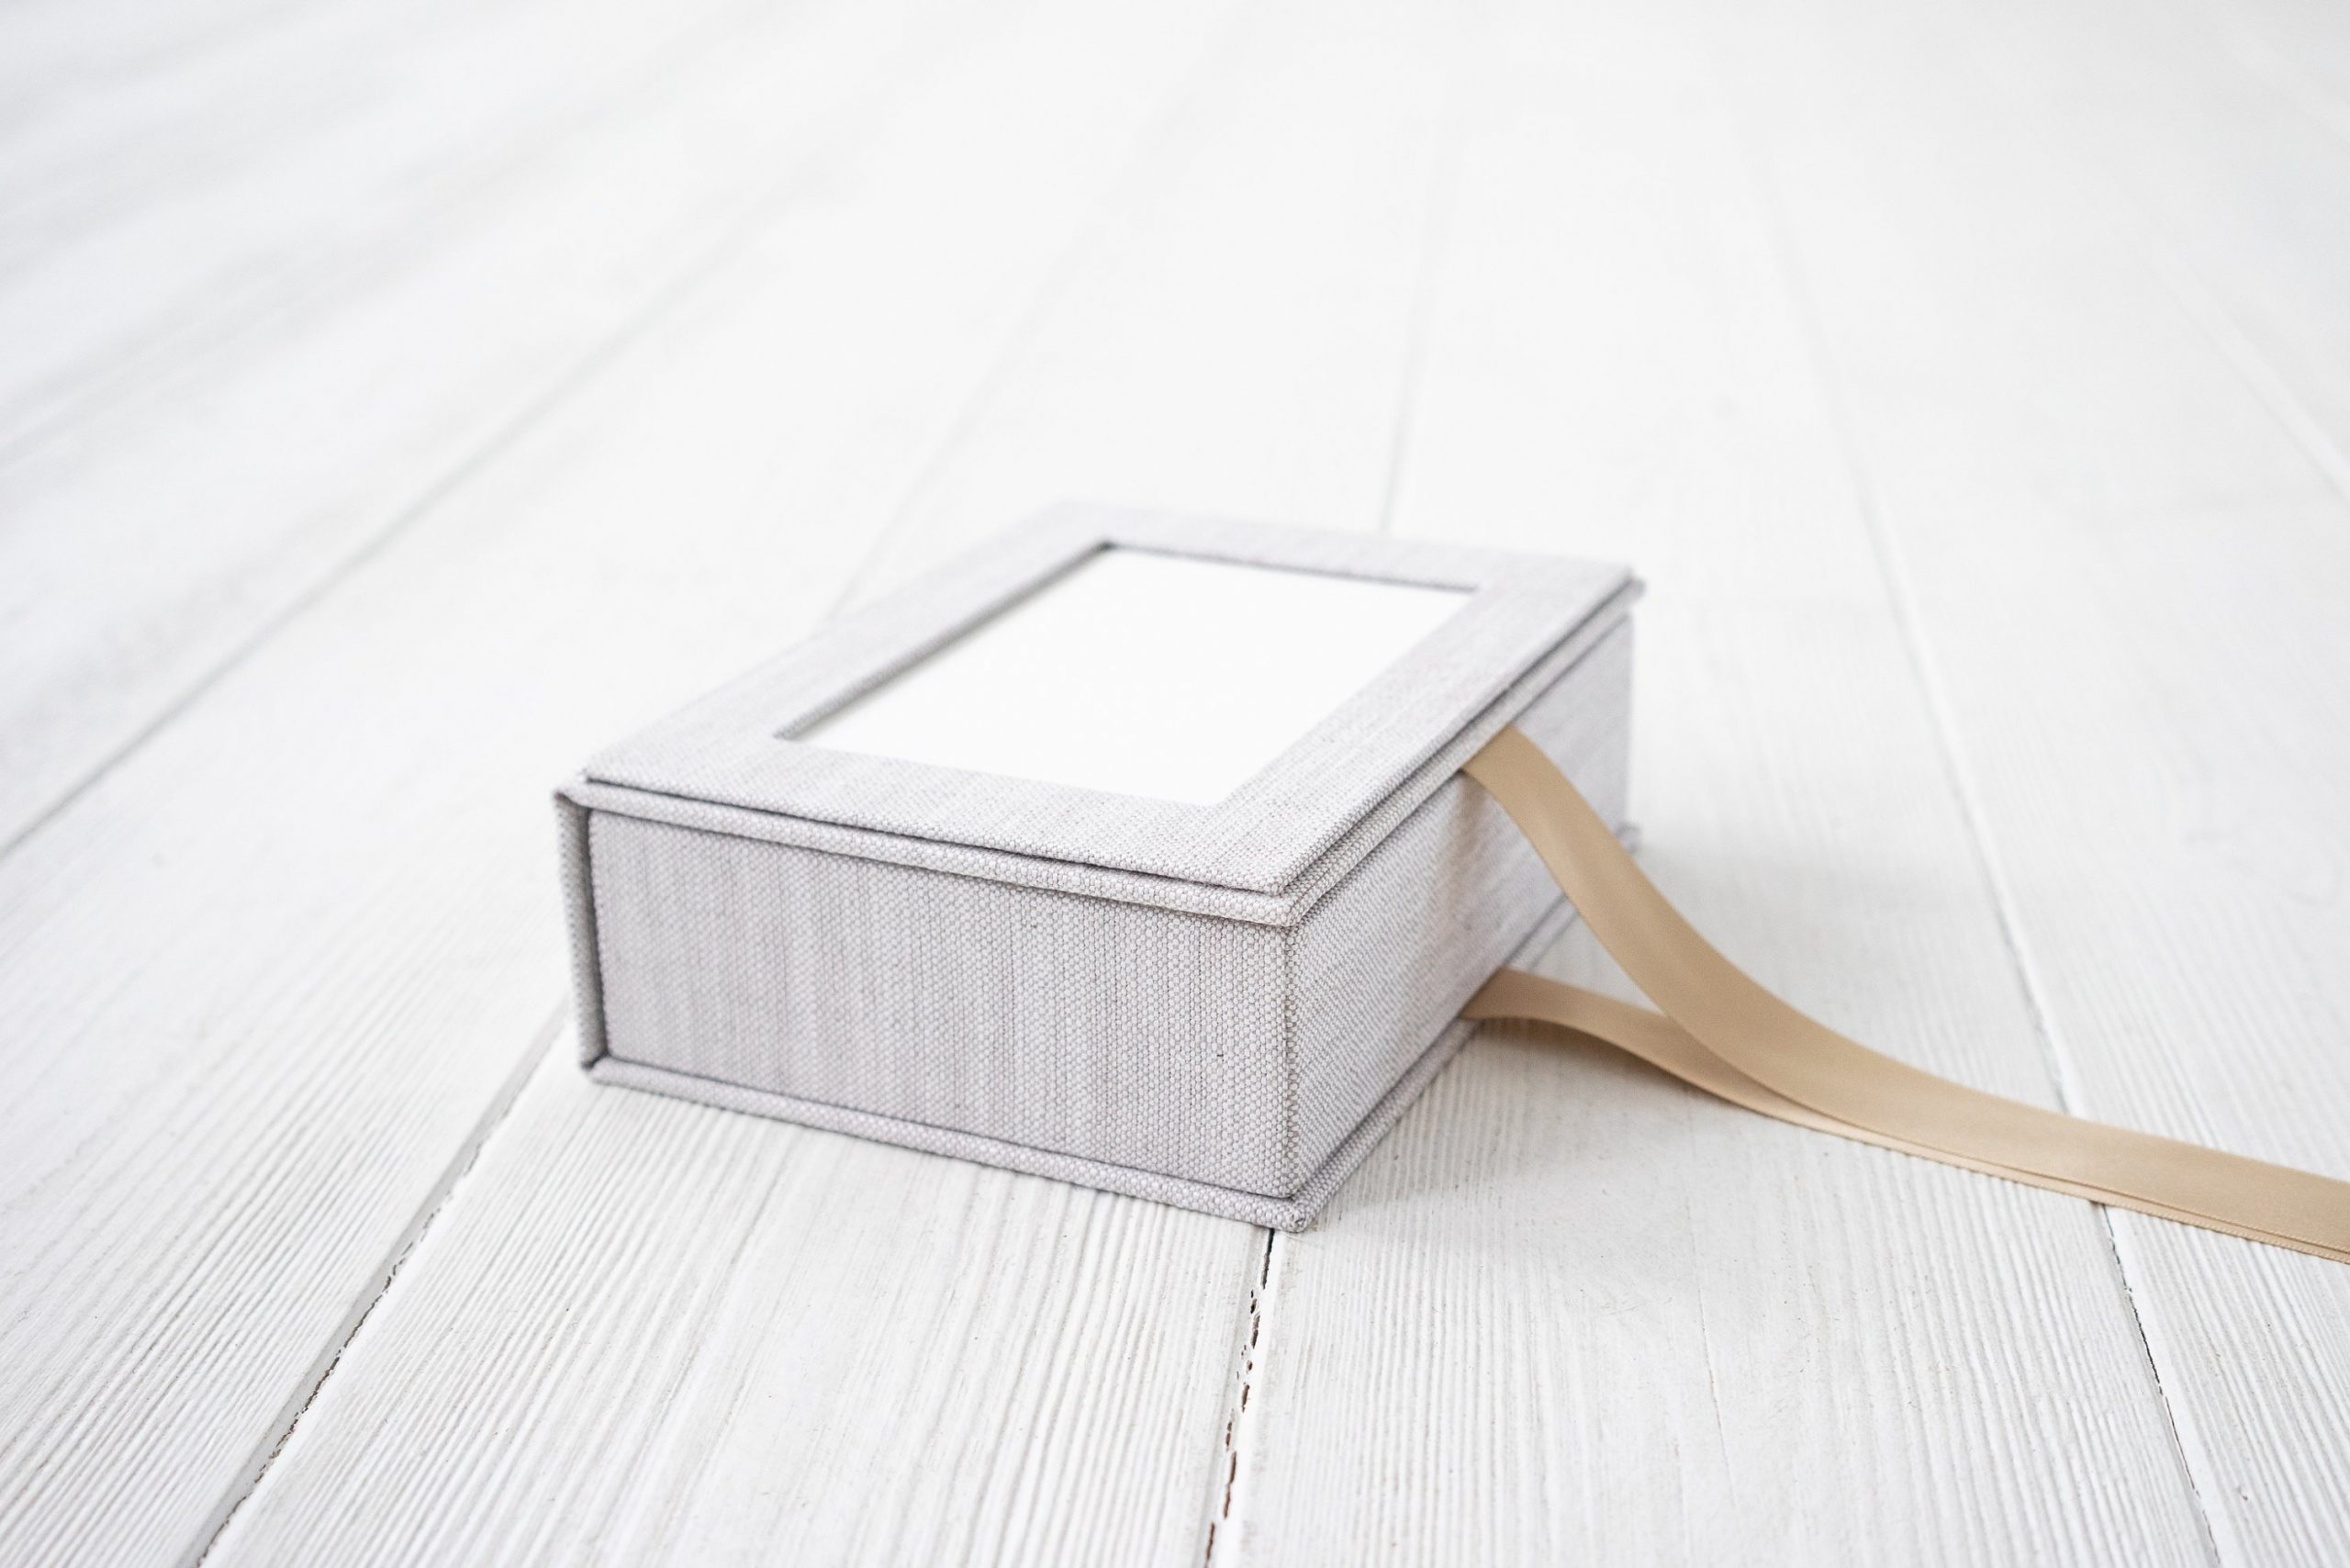 Does Presentation Boxes Have An Impact?